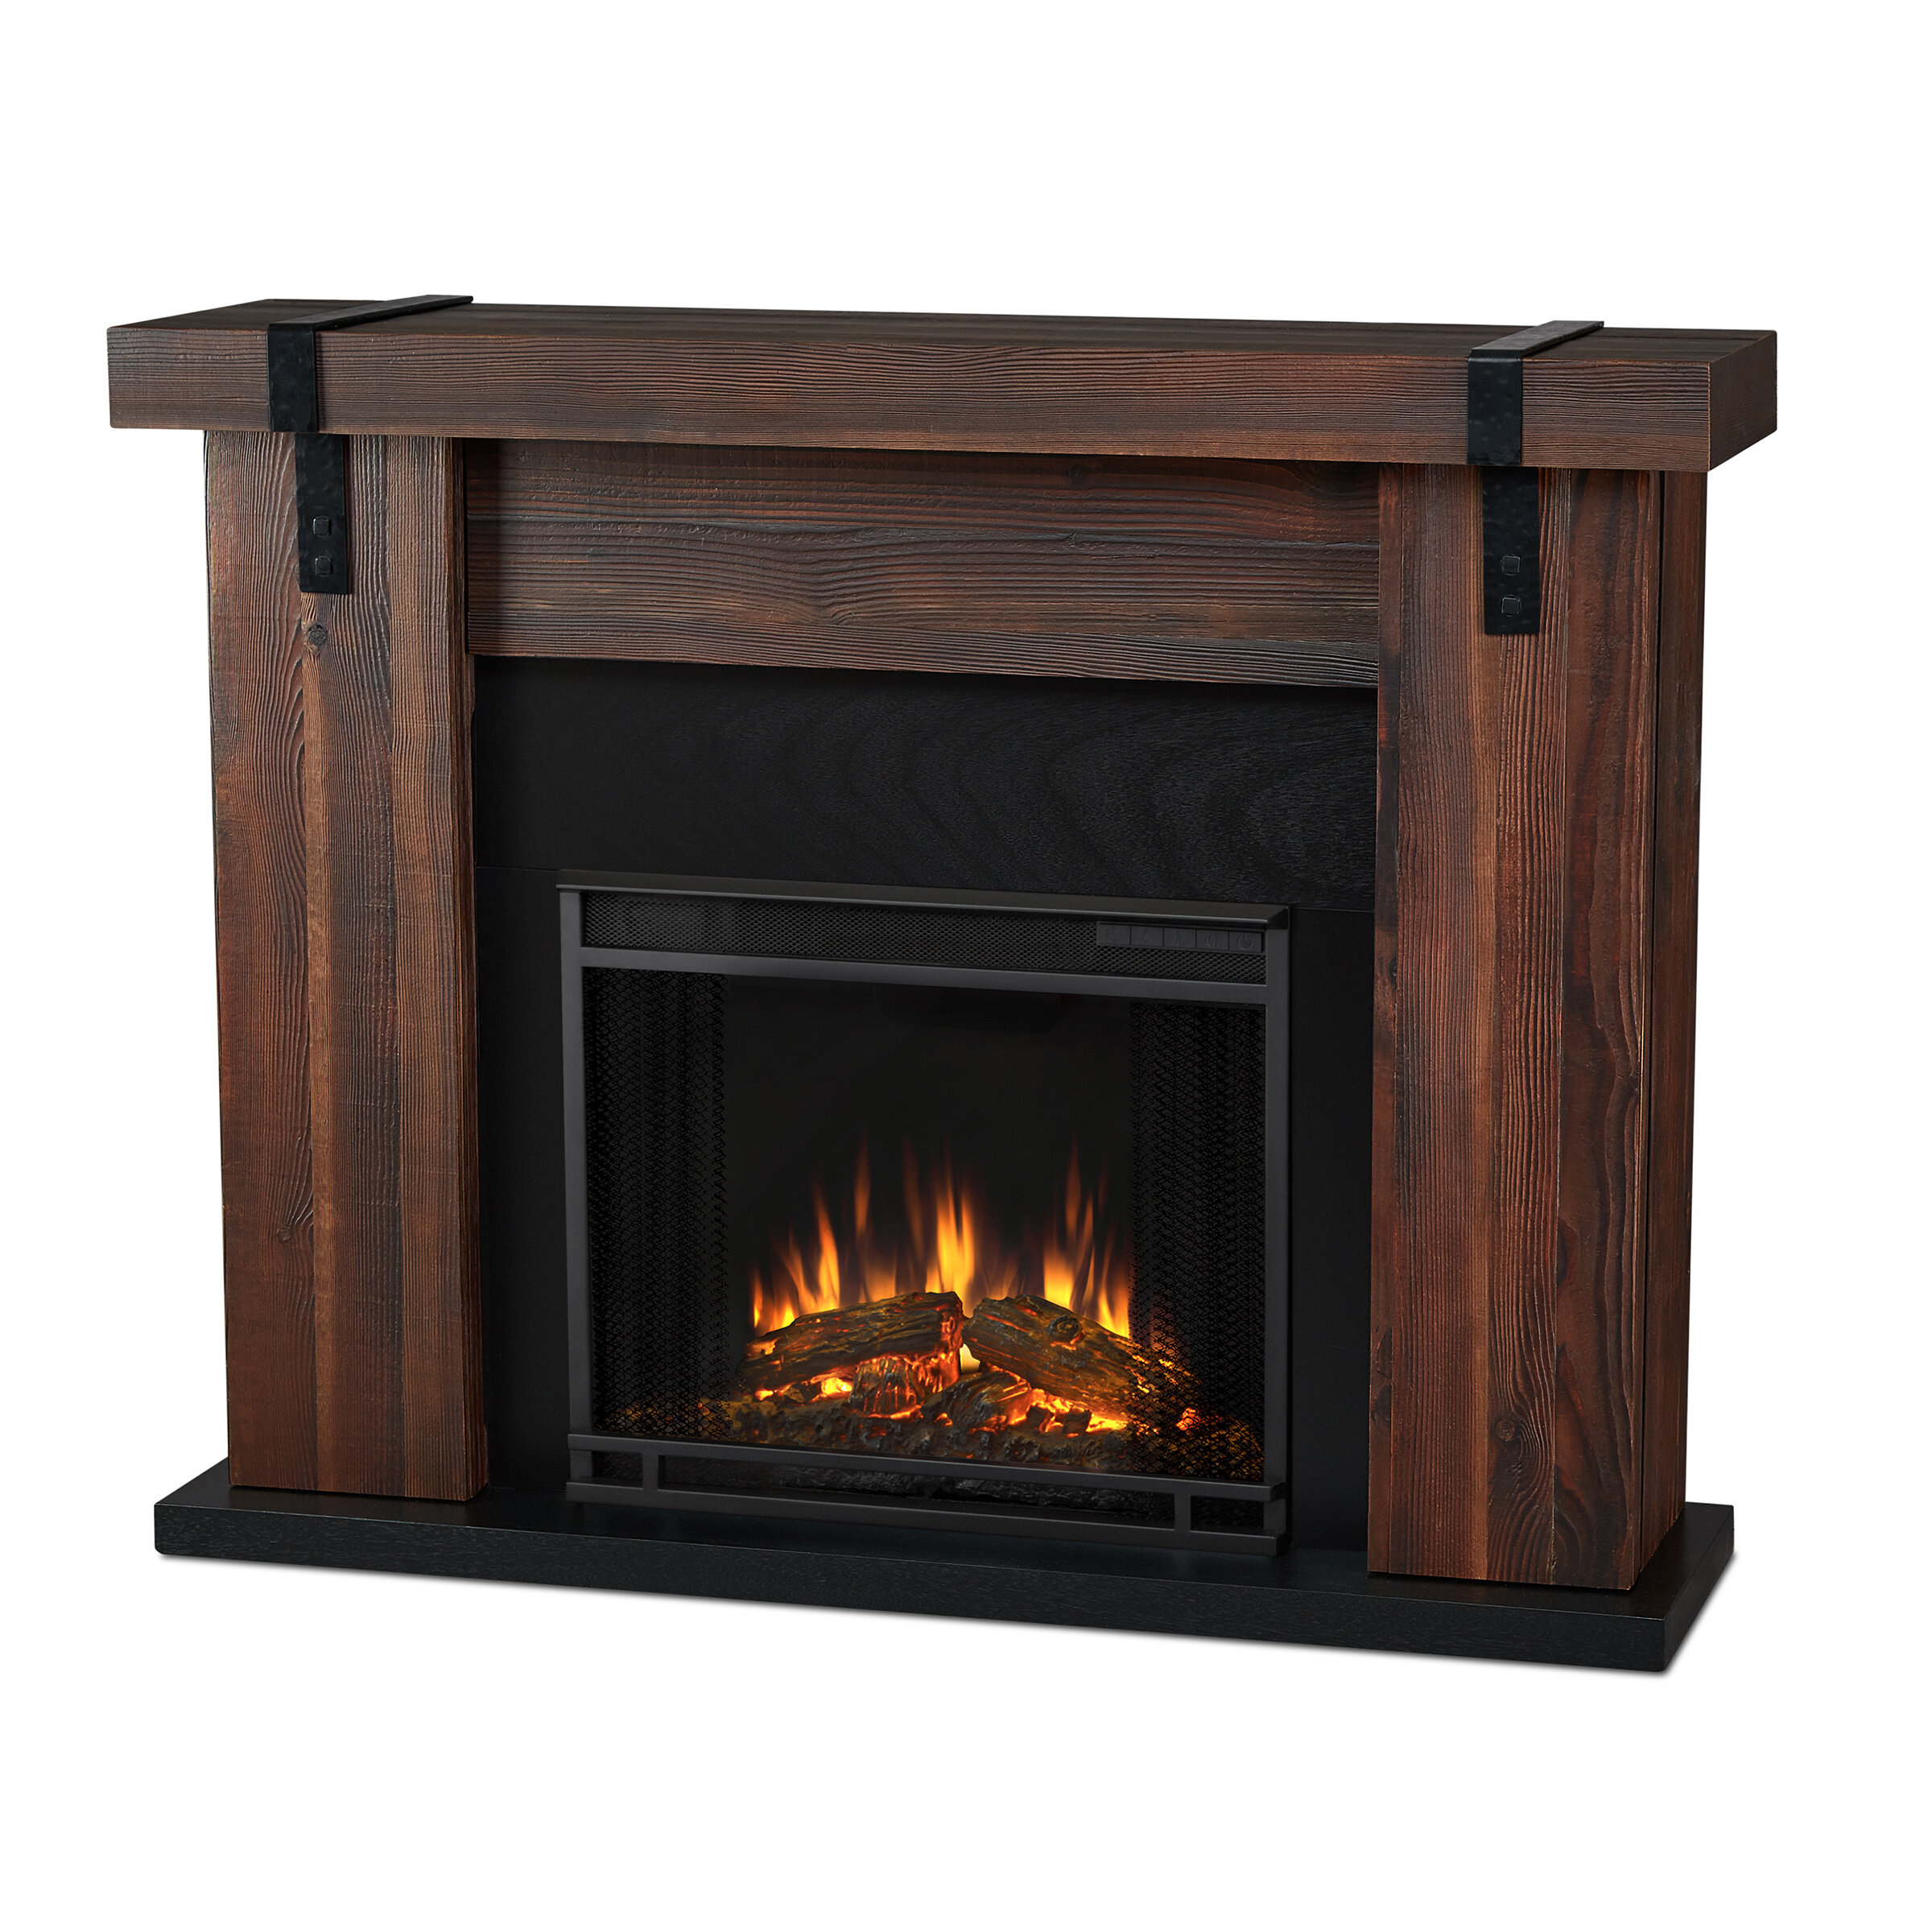 Cast Iron Electric Fireplace Html Amazing Home Design 2019